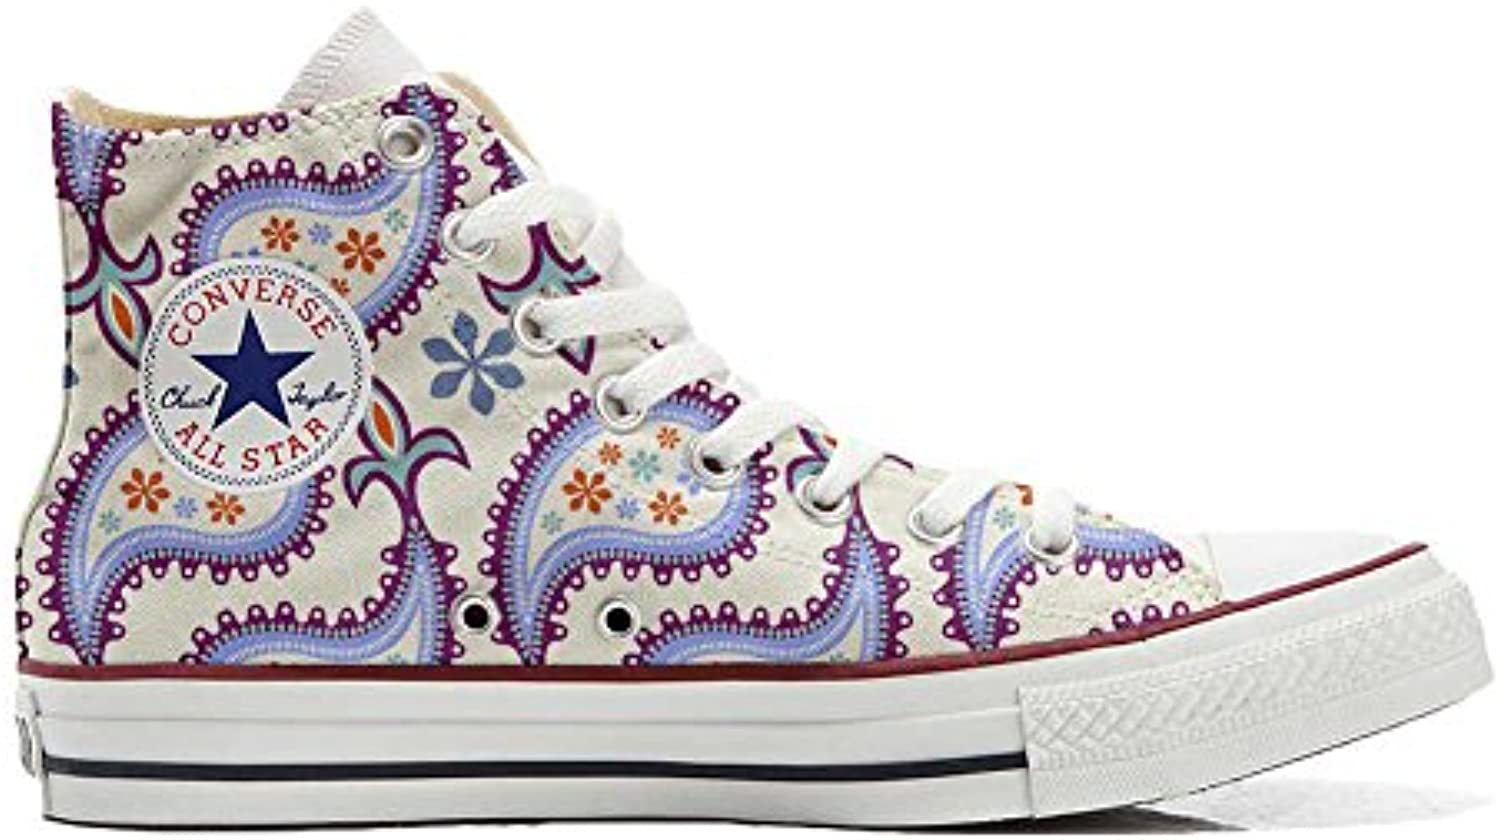 mys Converse All Star Personalisierte Schuhe   Handmade Shoes   Decorative Paisley